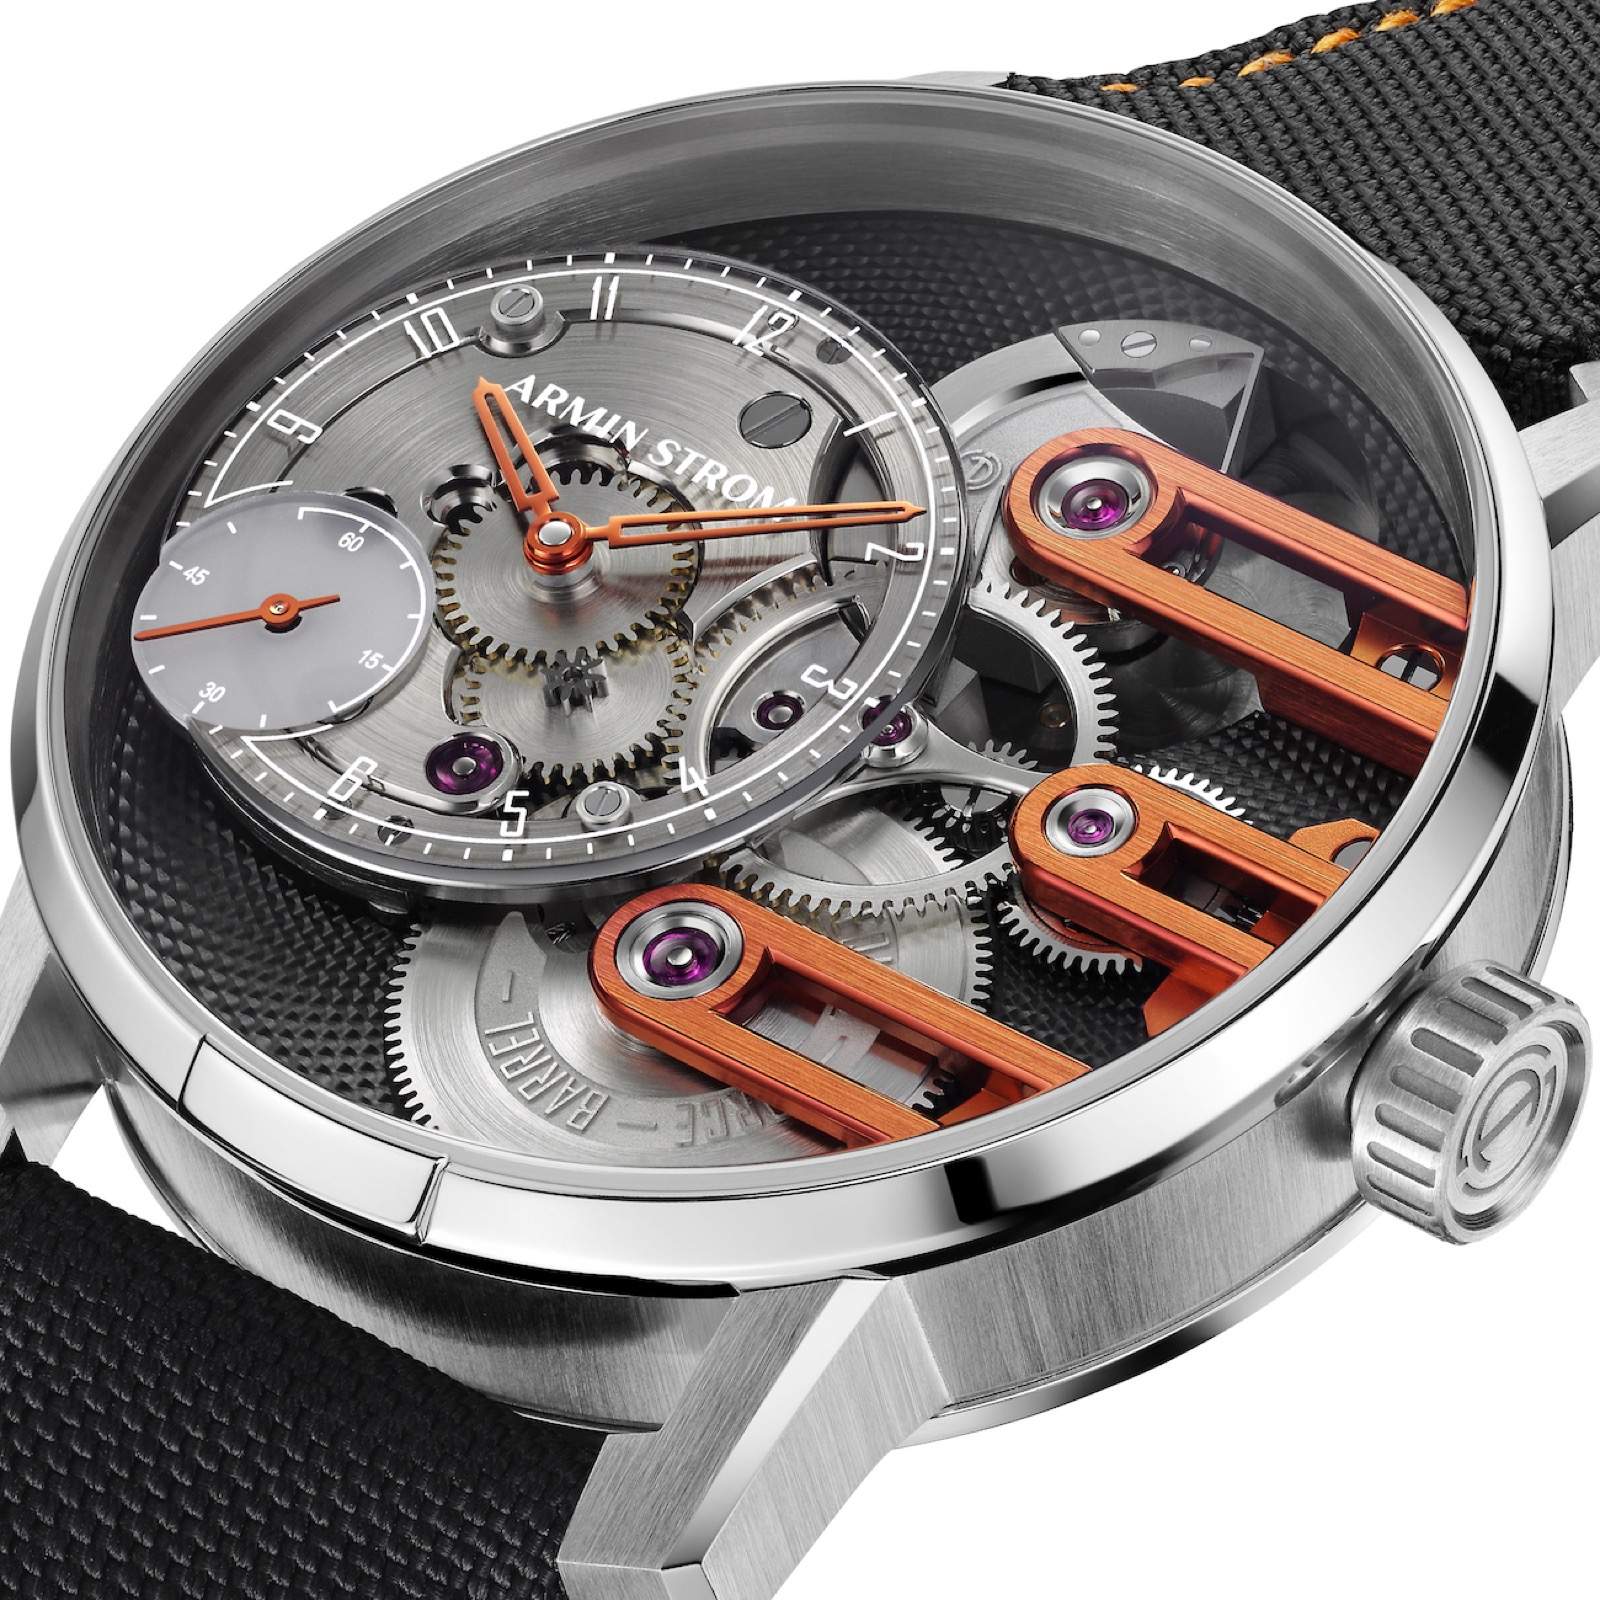 Armin-Strom-Gravity-Equal-Force-Only-Watch-2021